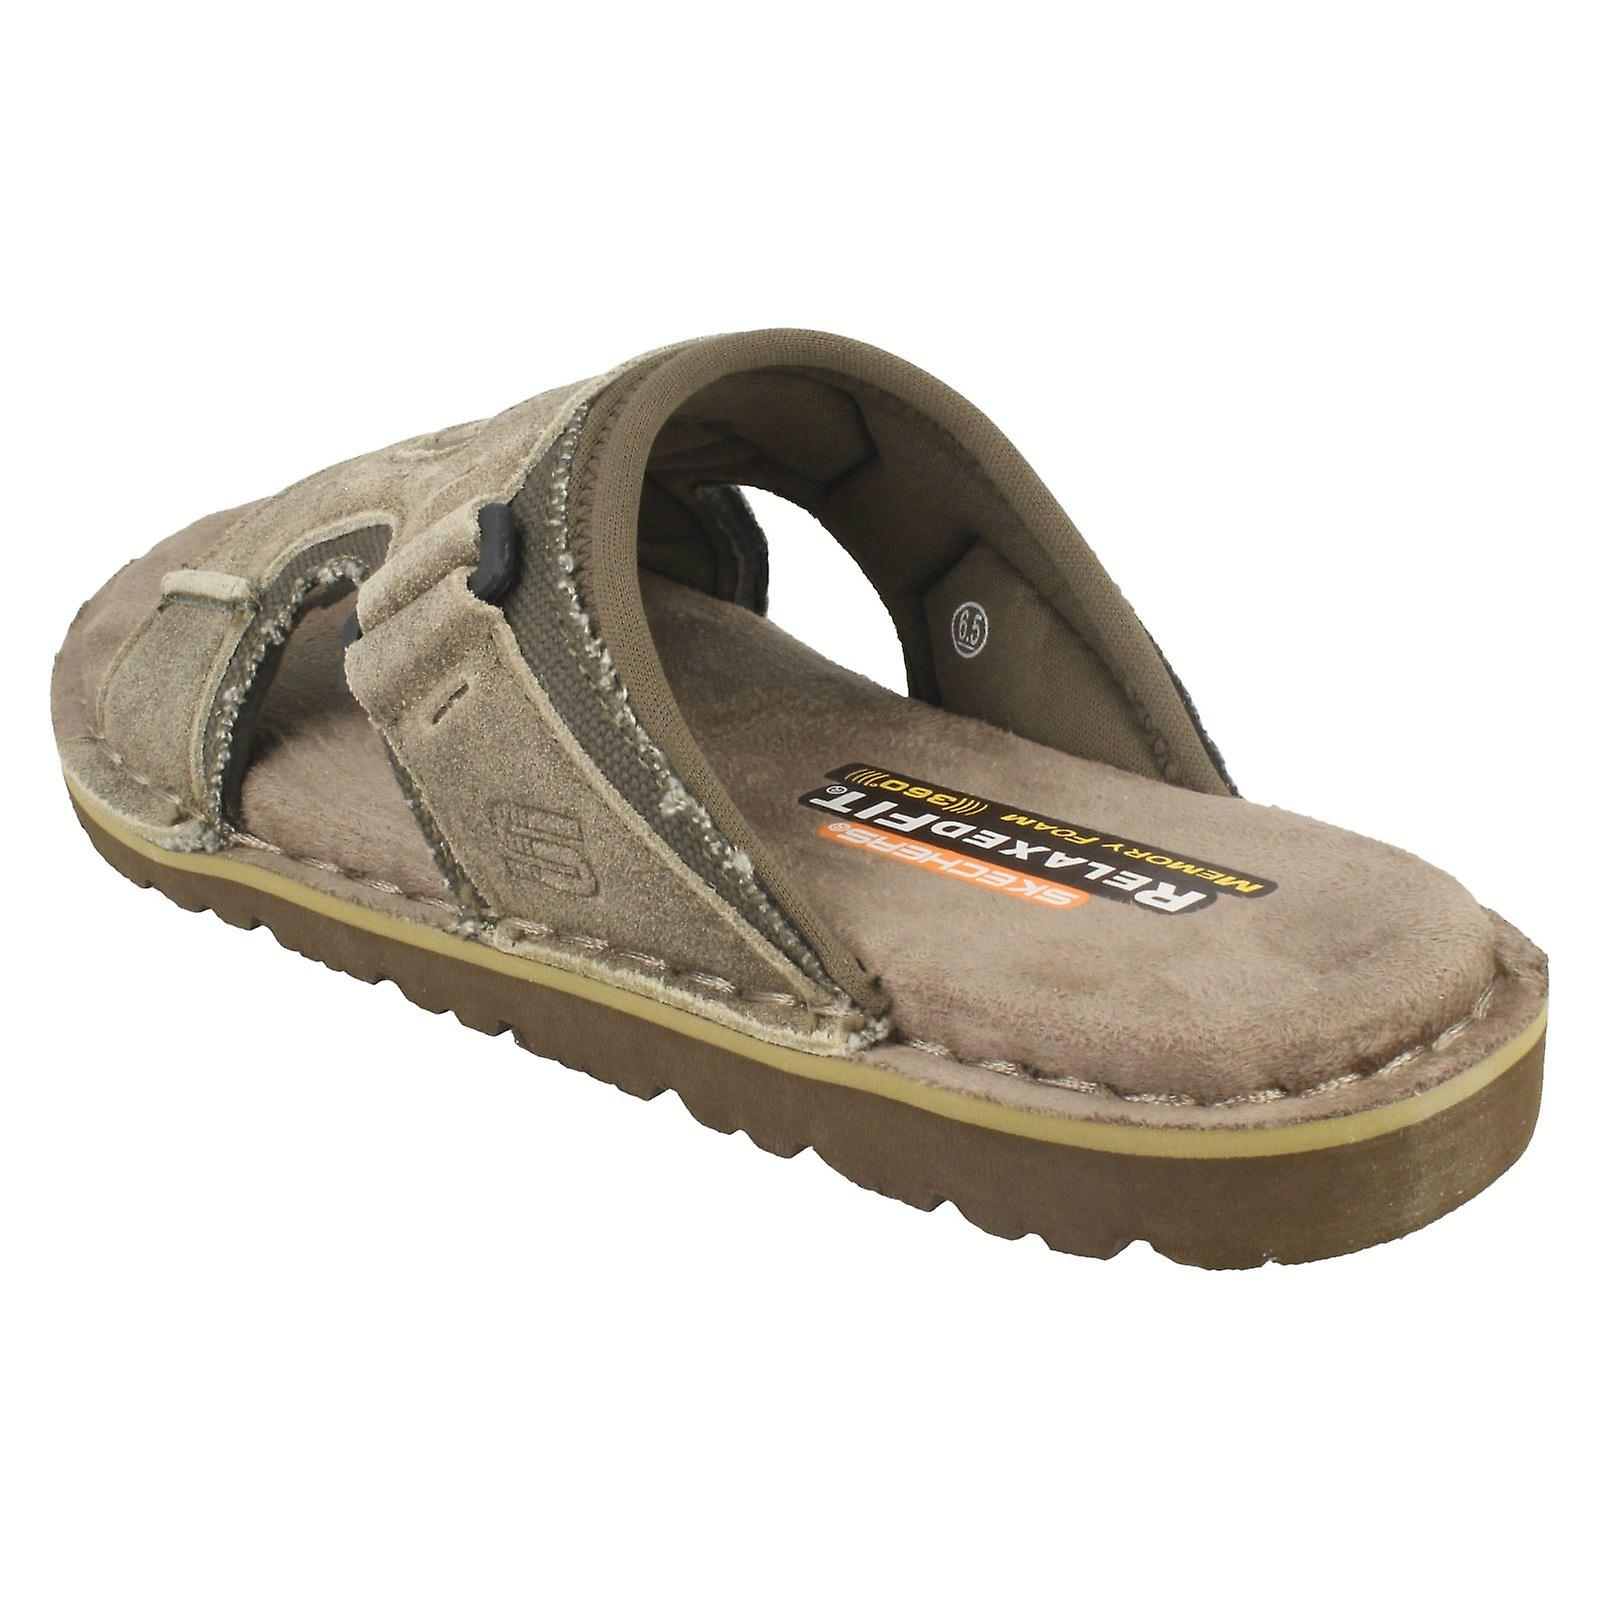 cce7ba99a6a Mens Skechers with Memory Foam Relaxed Fit Sandals Golson 64148